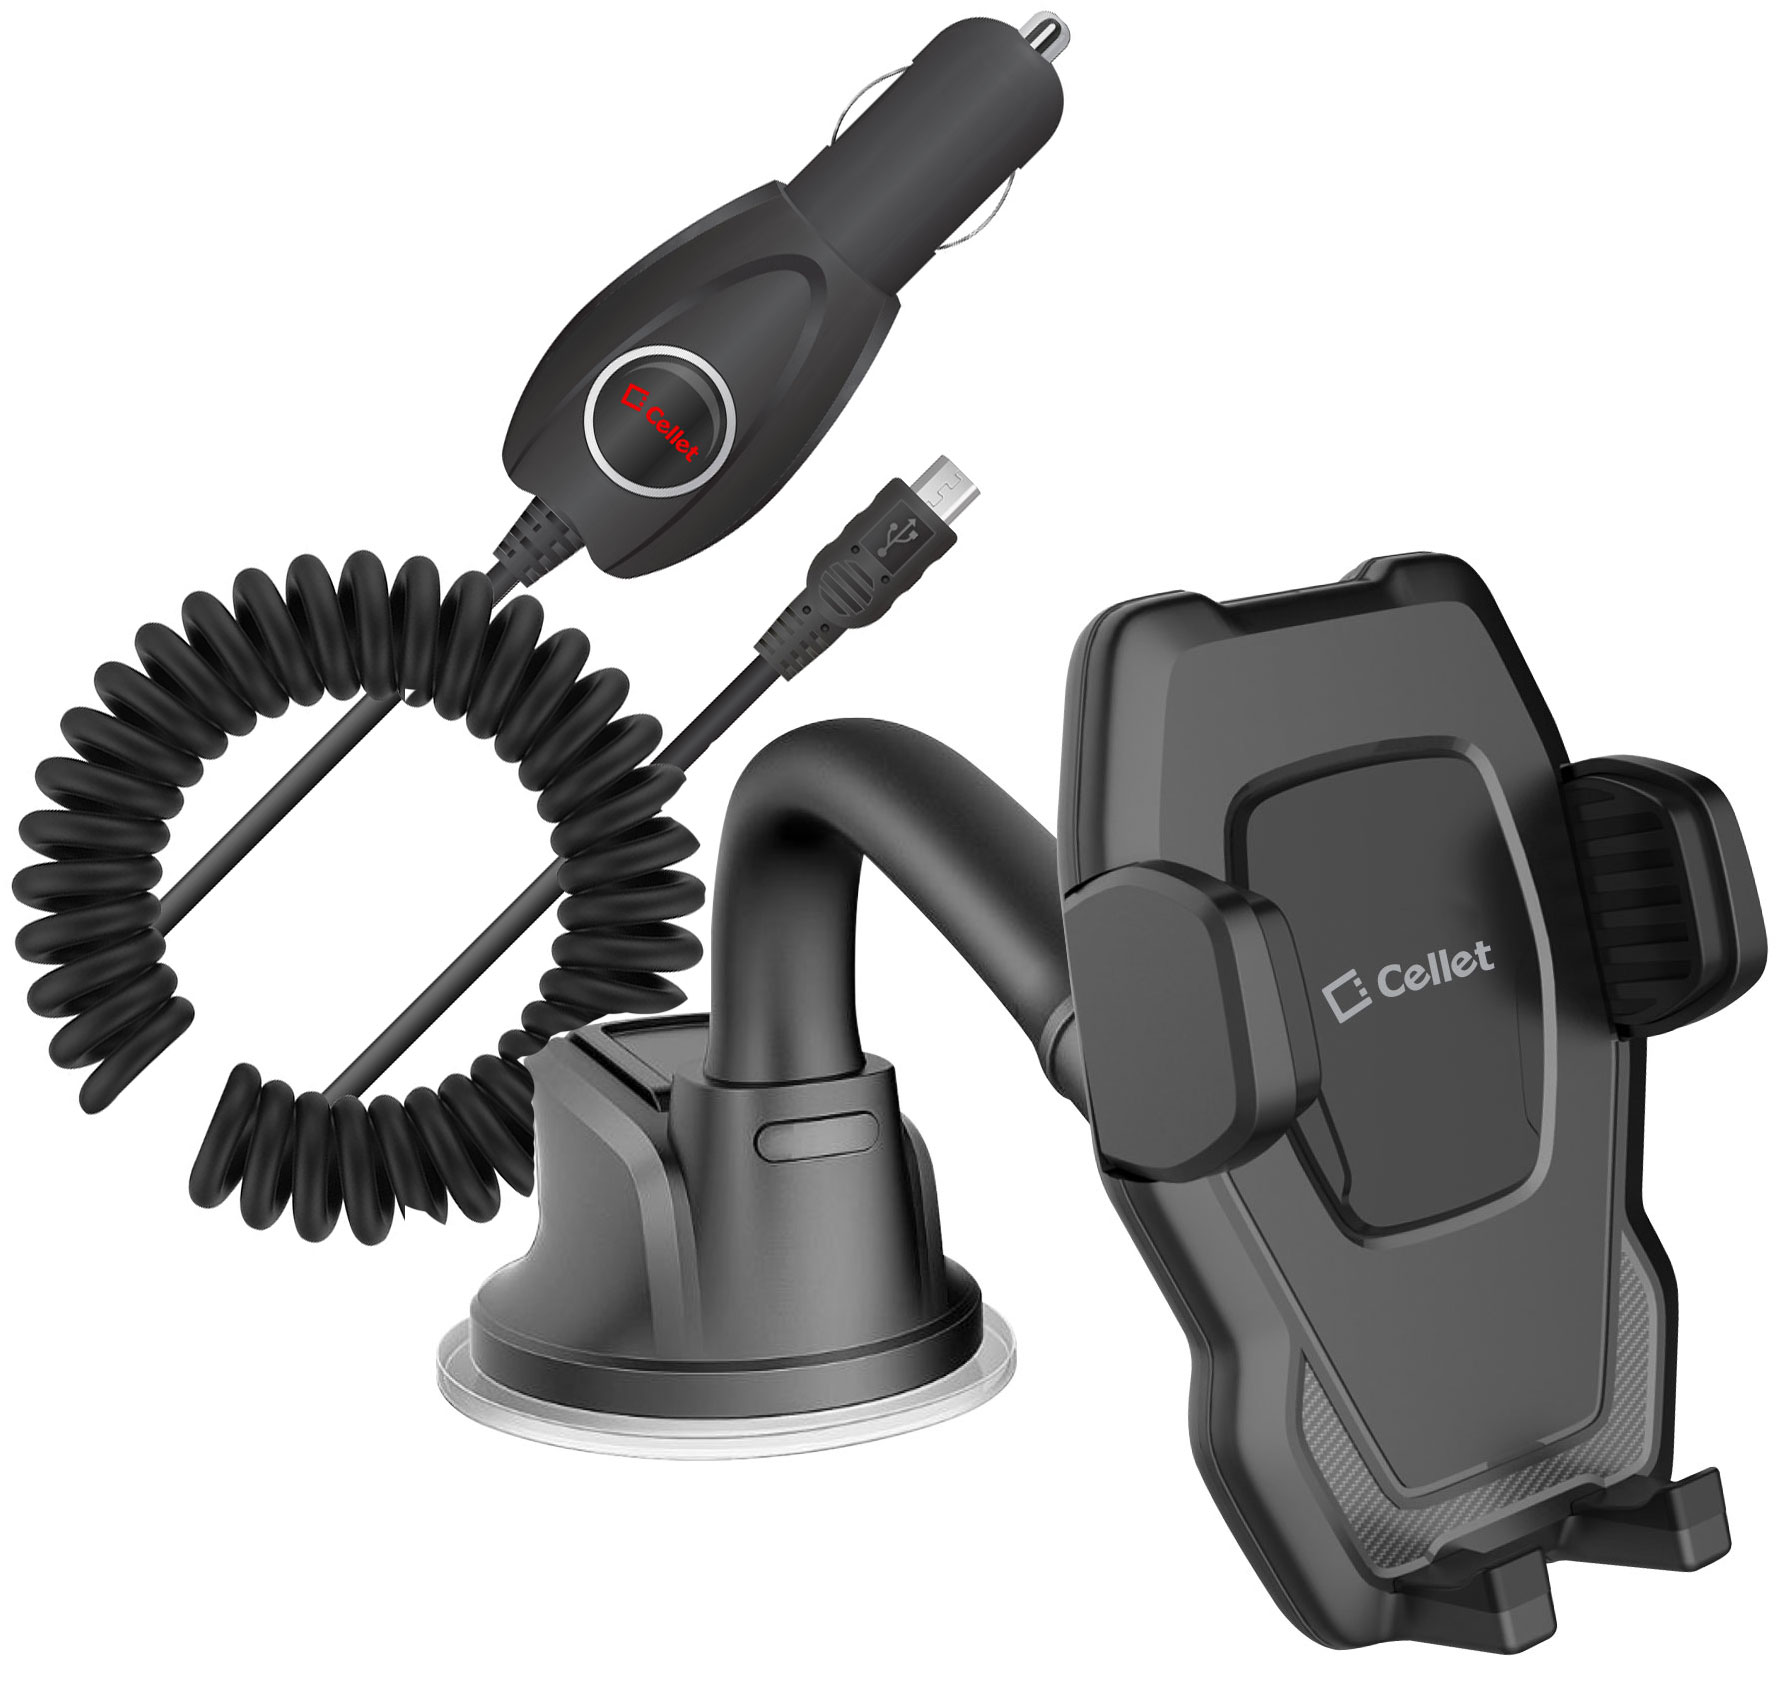 Alcatel Go Flip Windshield Phone Holder Goose Neck Car Charger Black